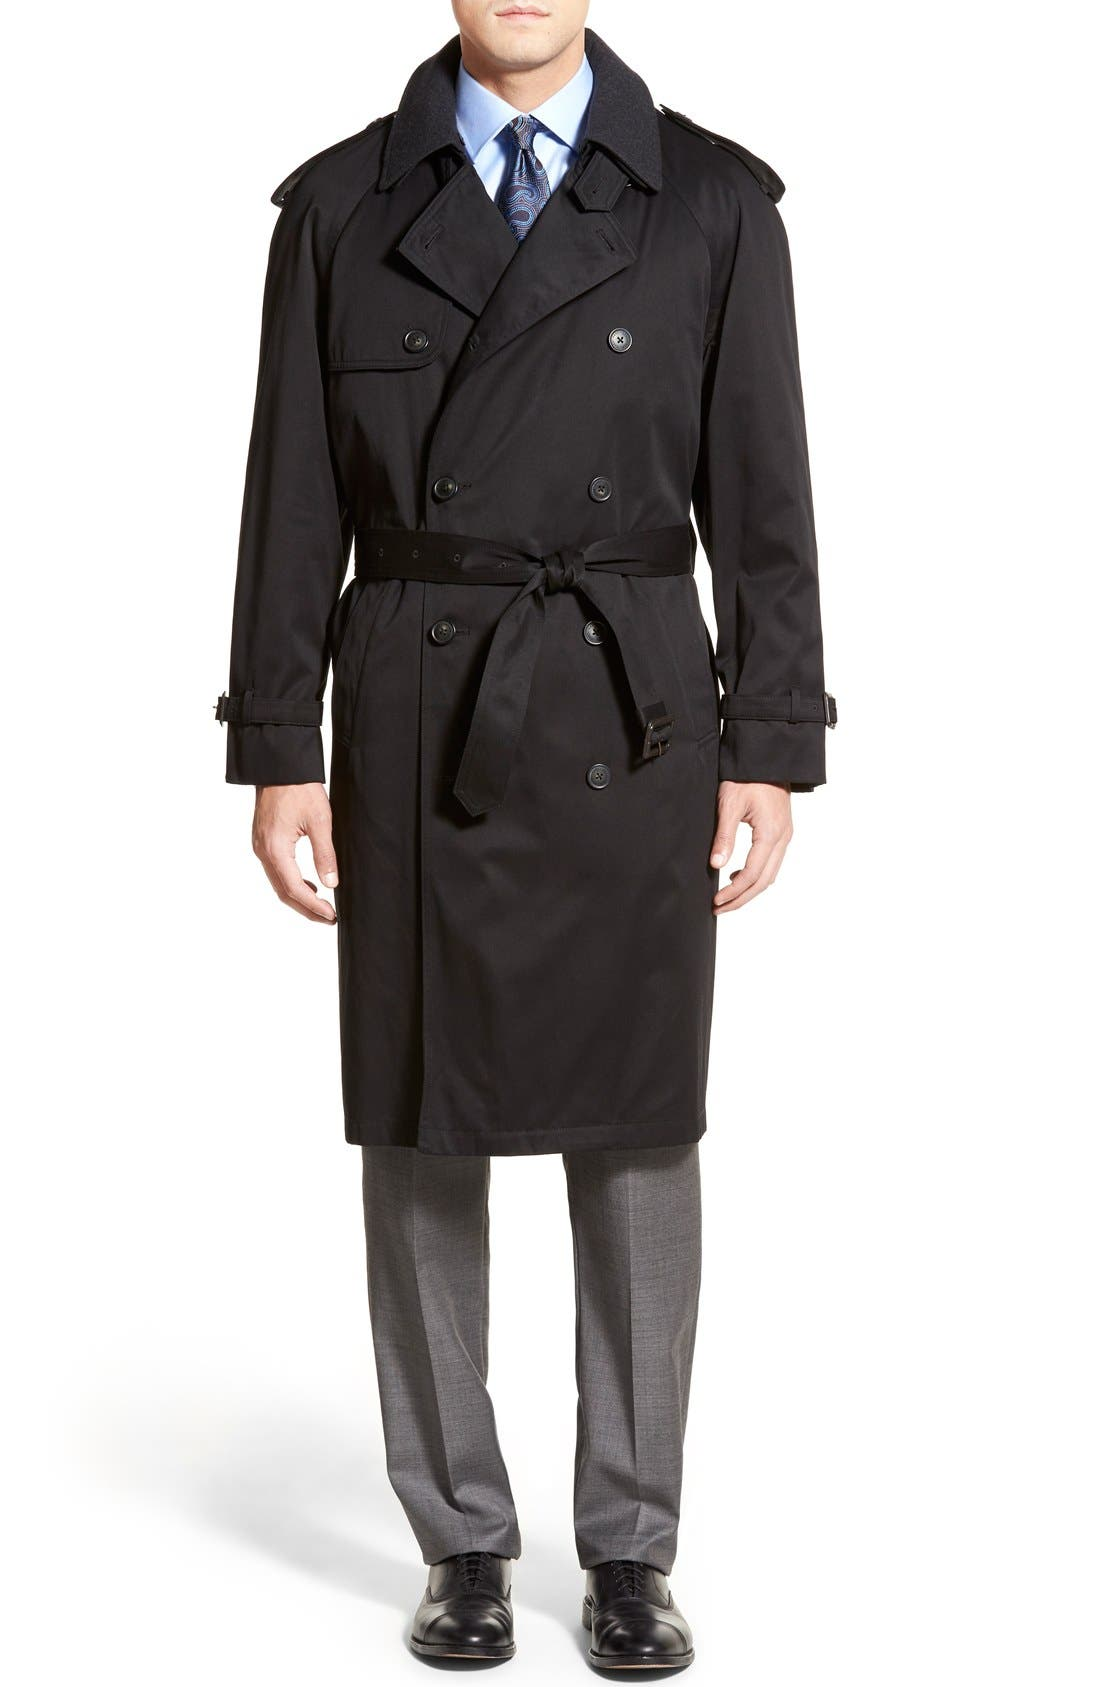 Men's Vintage Style Coats and Jackets Mens Big  Tall Hart Schaffner Marx Barrington Classic Fit Cotton Blend Trench Coat Size 44 L - Black $296.90 AT vintagedancer.com